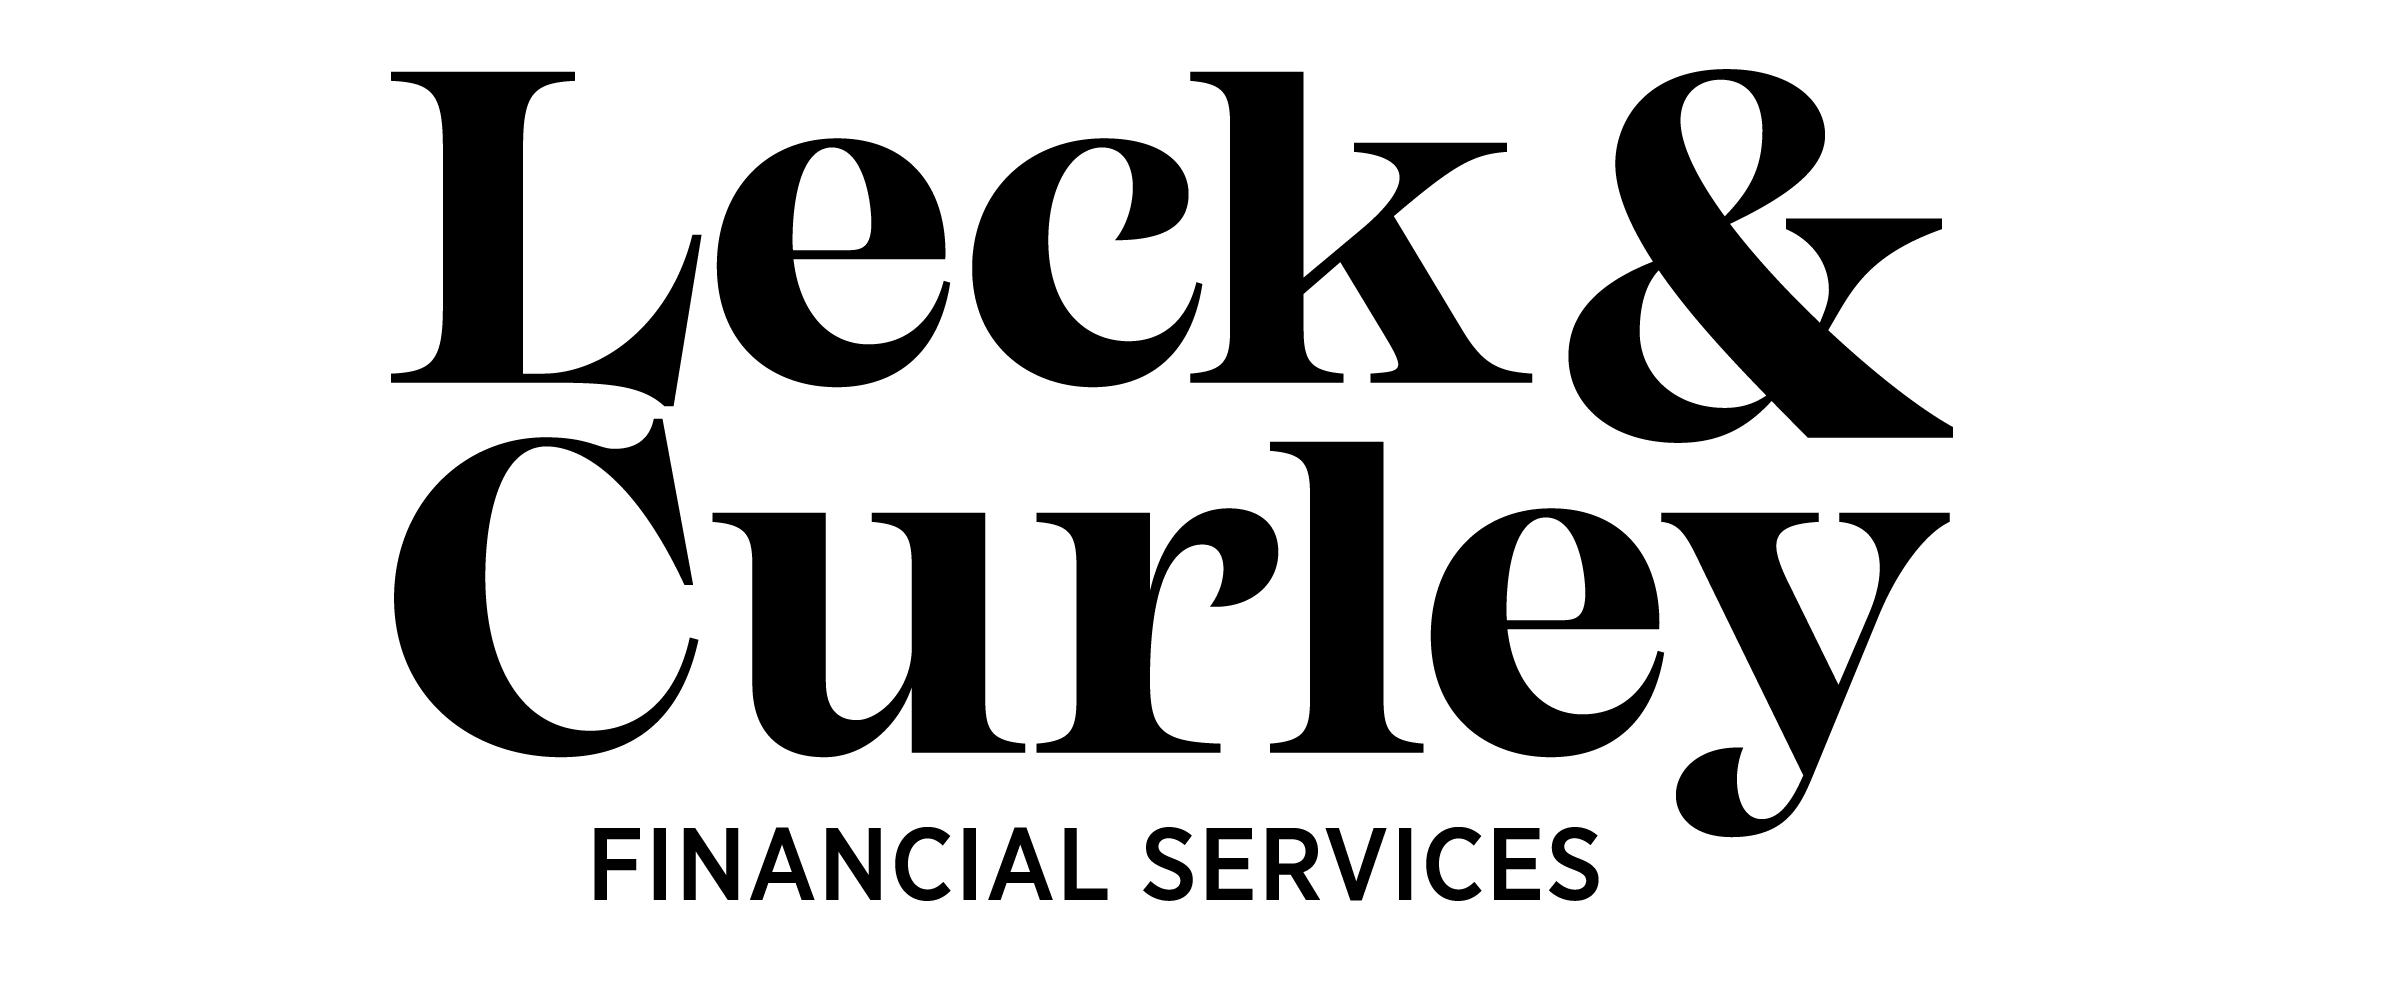 A.G. Leck Financial Services Ltd. - Logo